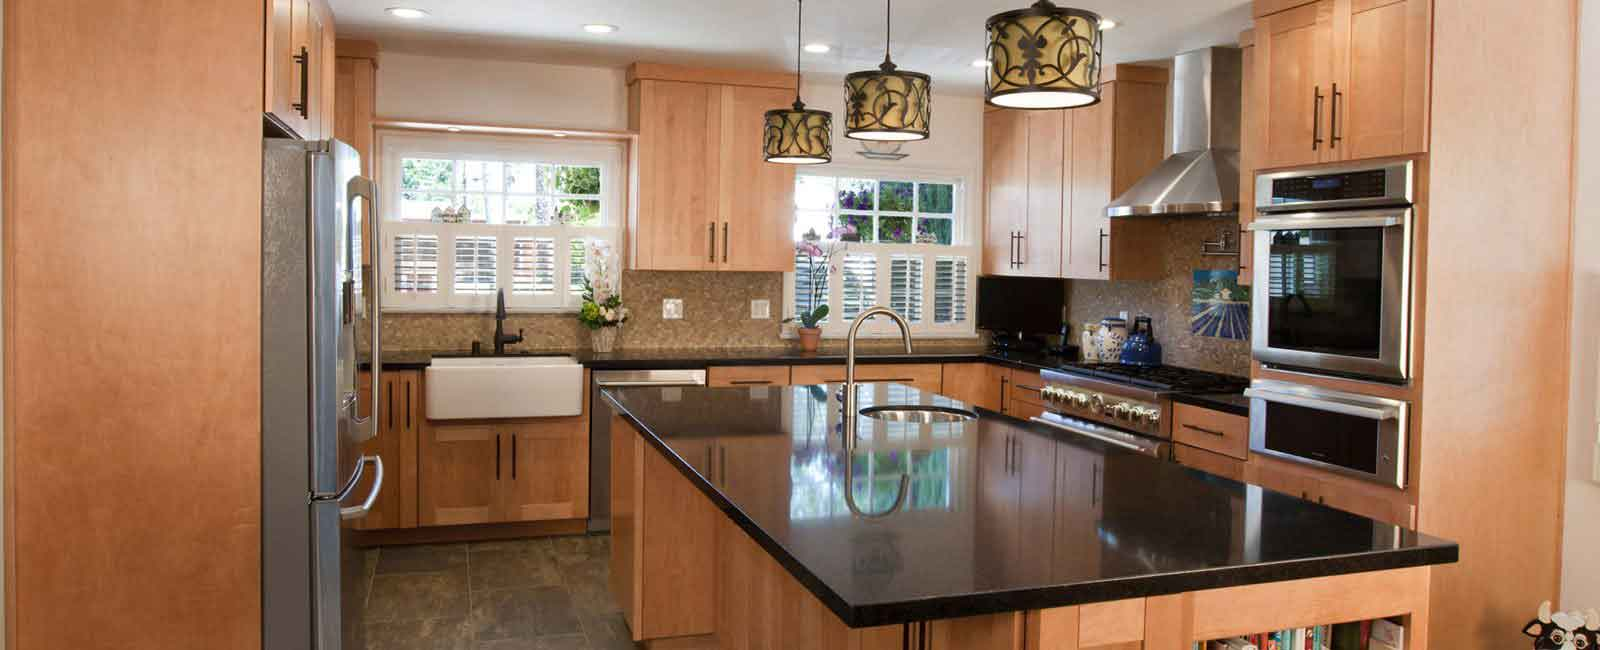 Custom Kitchen Cabinets In Santa Monica CA